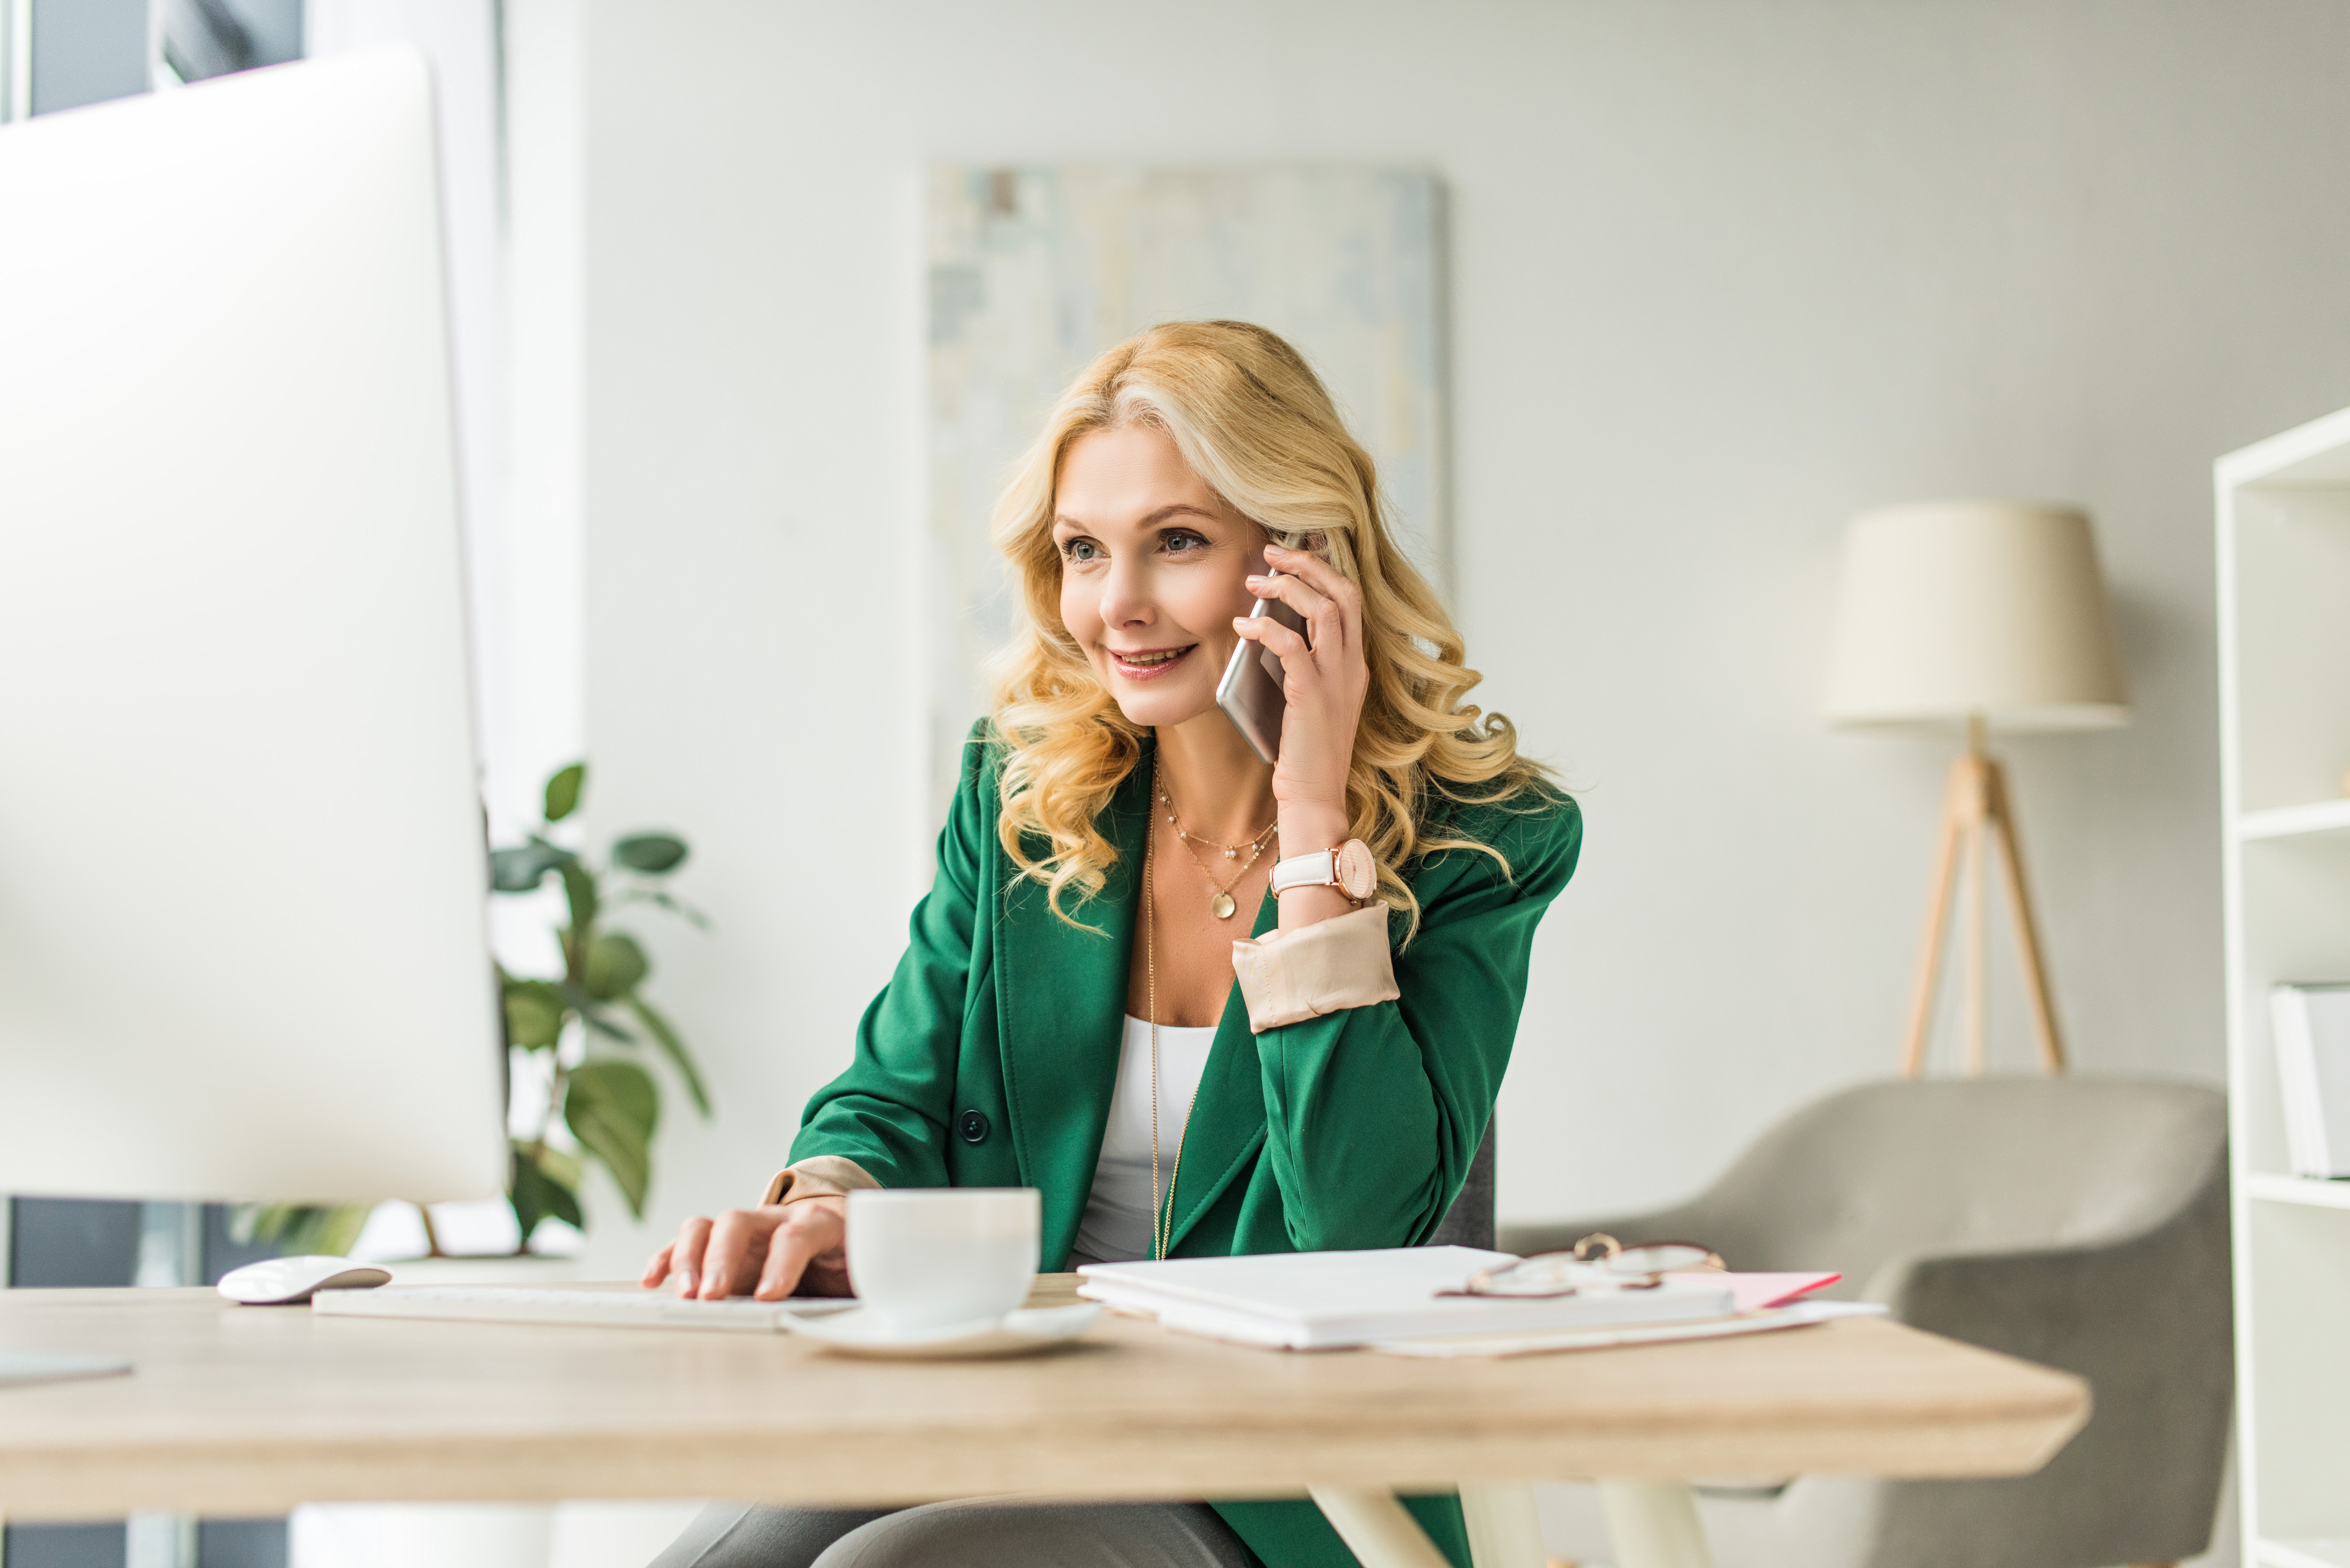 14 Tips To Acing The Phone Screening Interview